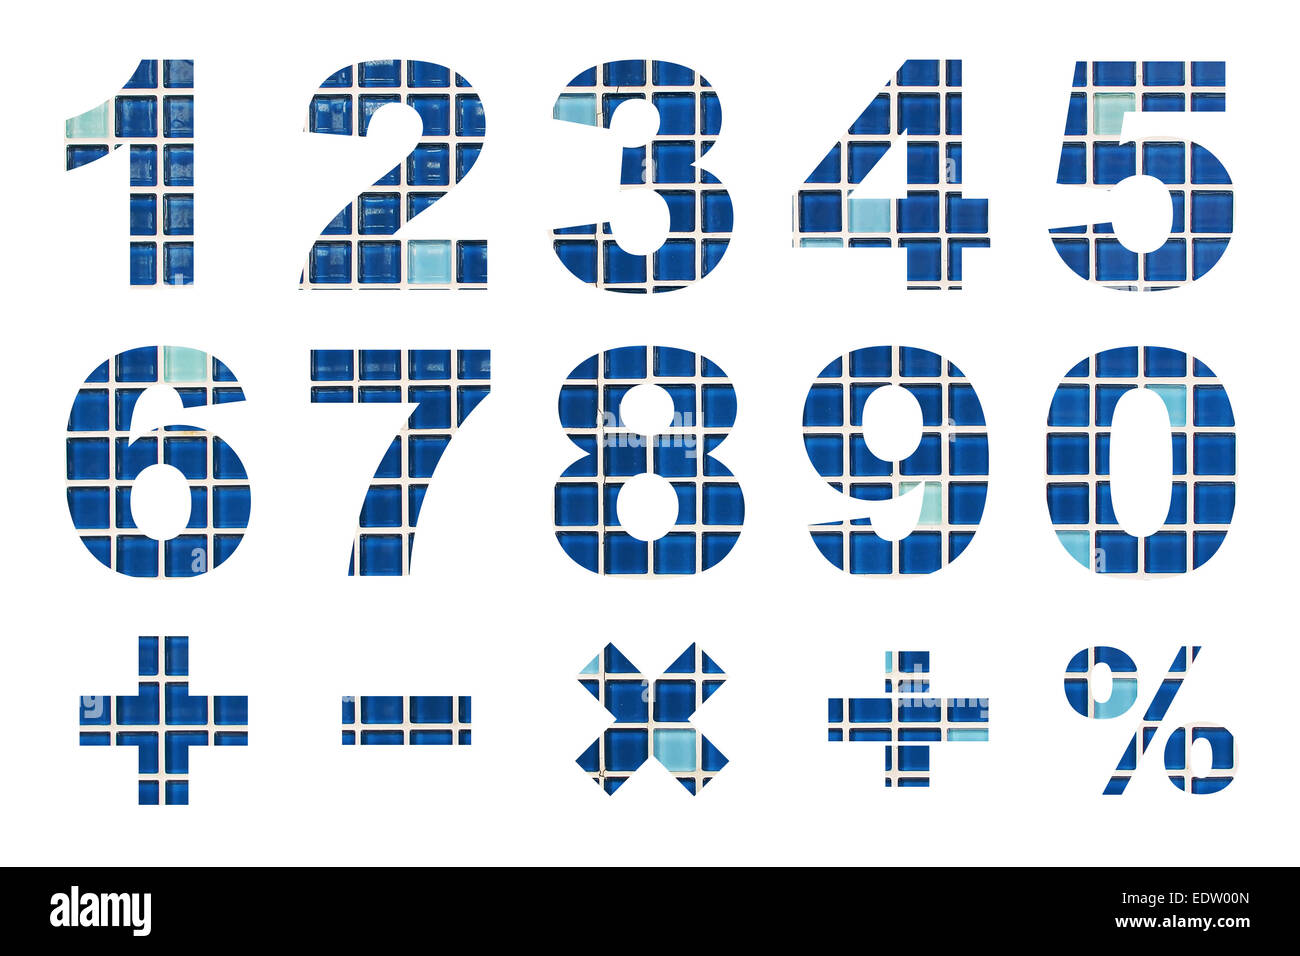 Mathematical Symbols Cut Out Stock Images & Pictures - Alamy